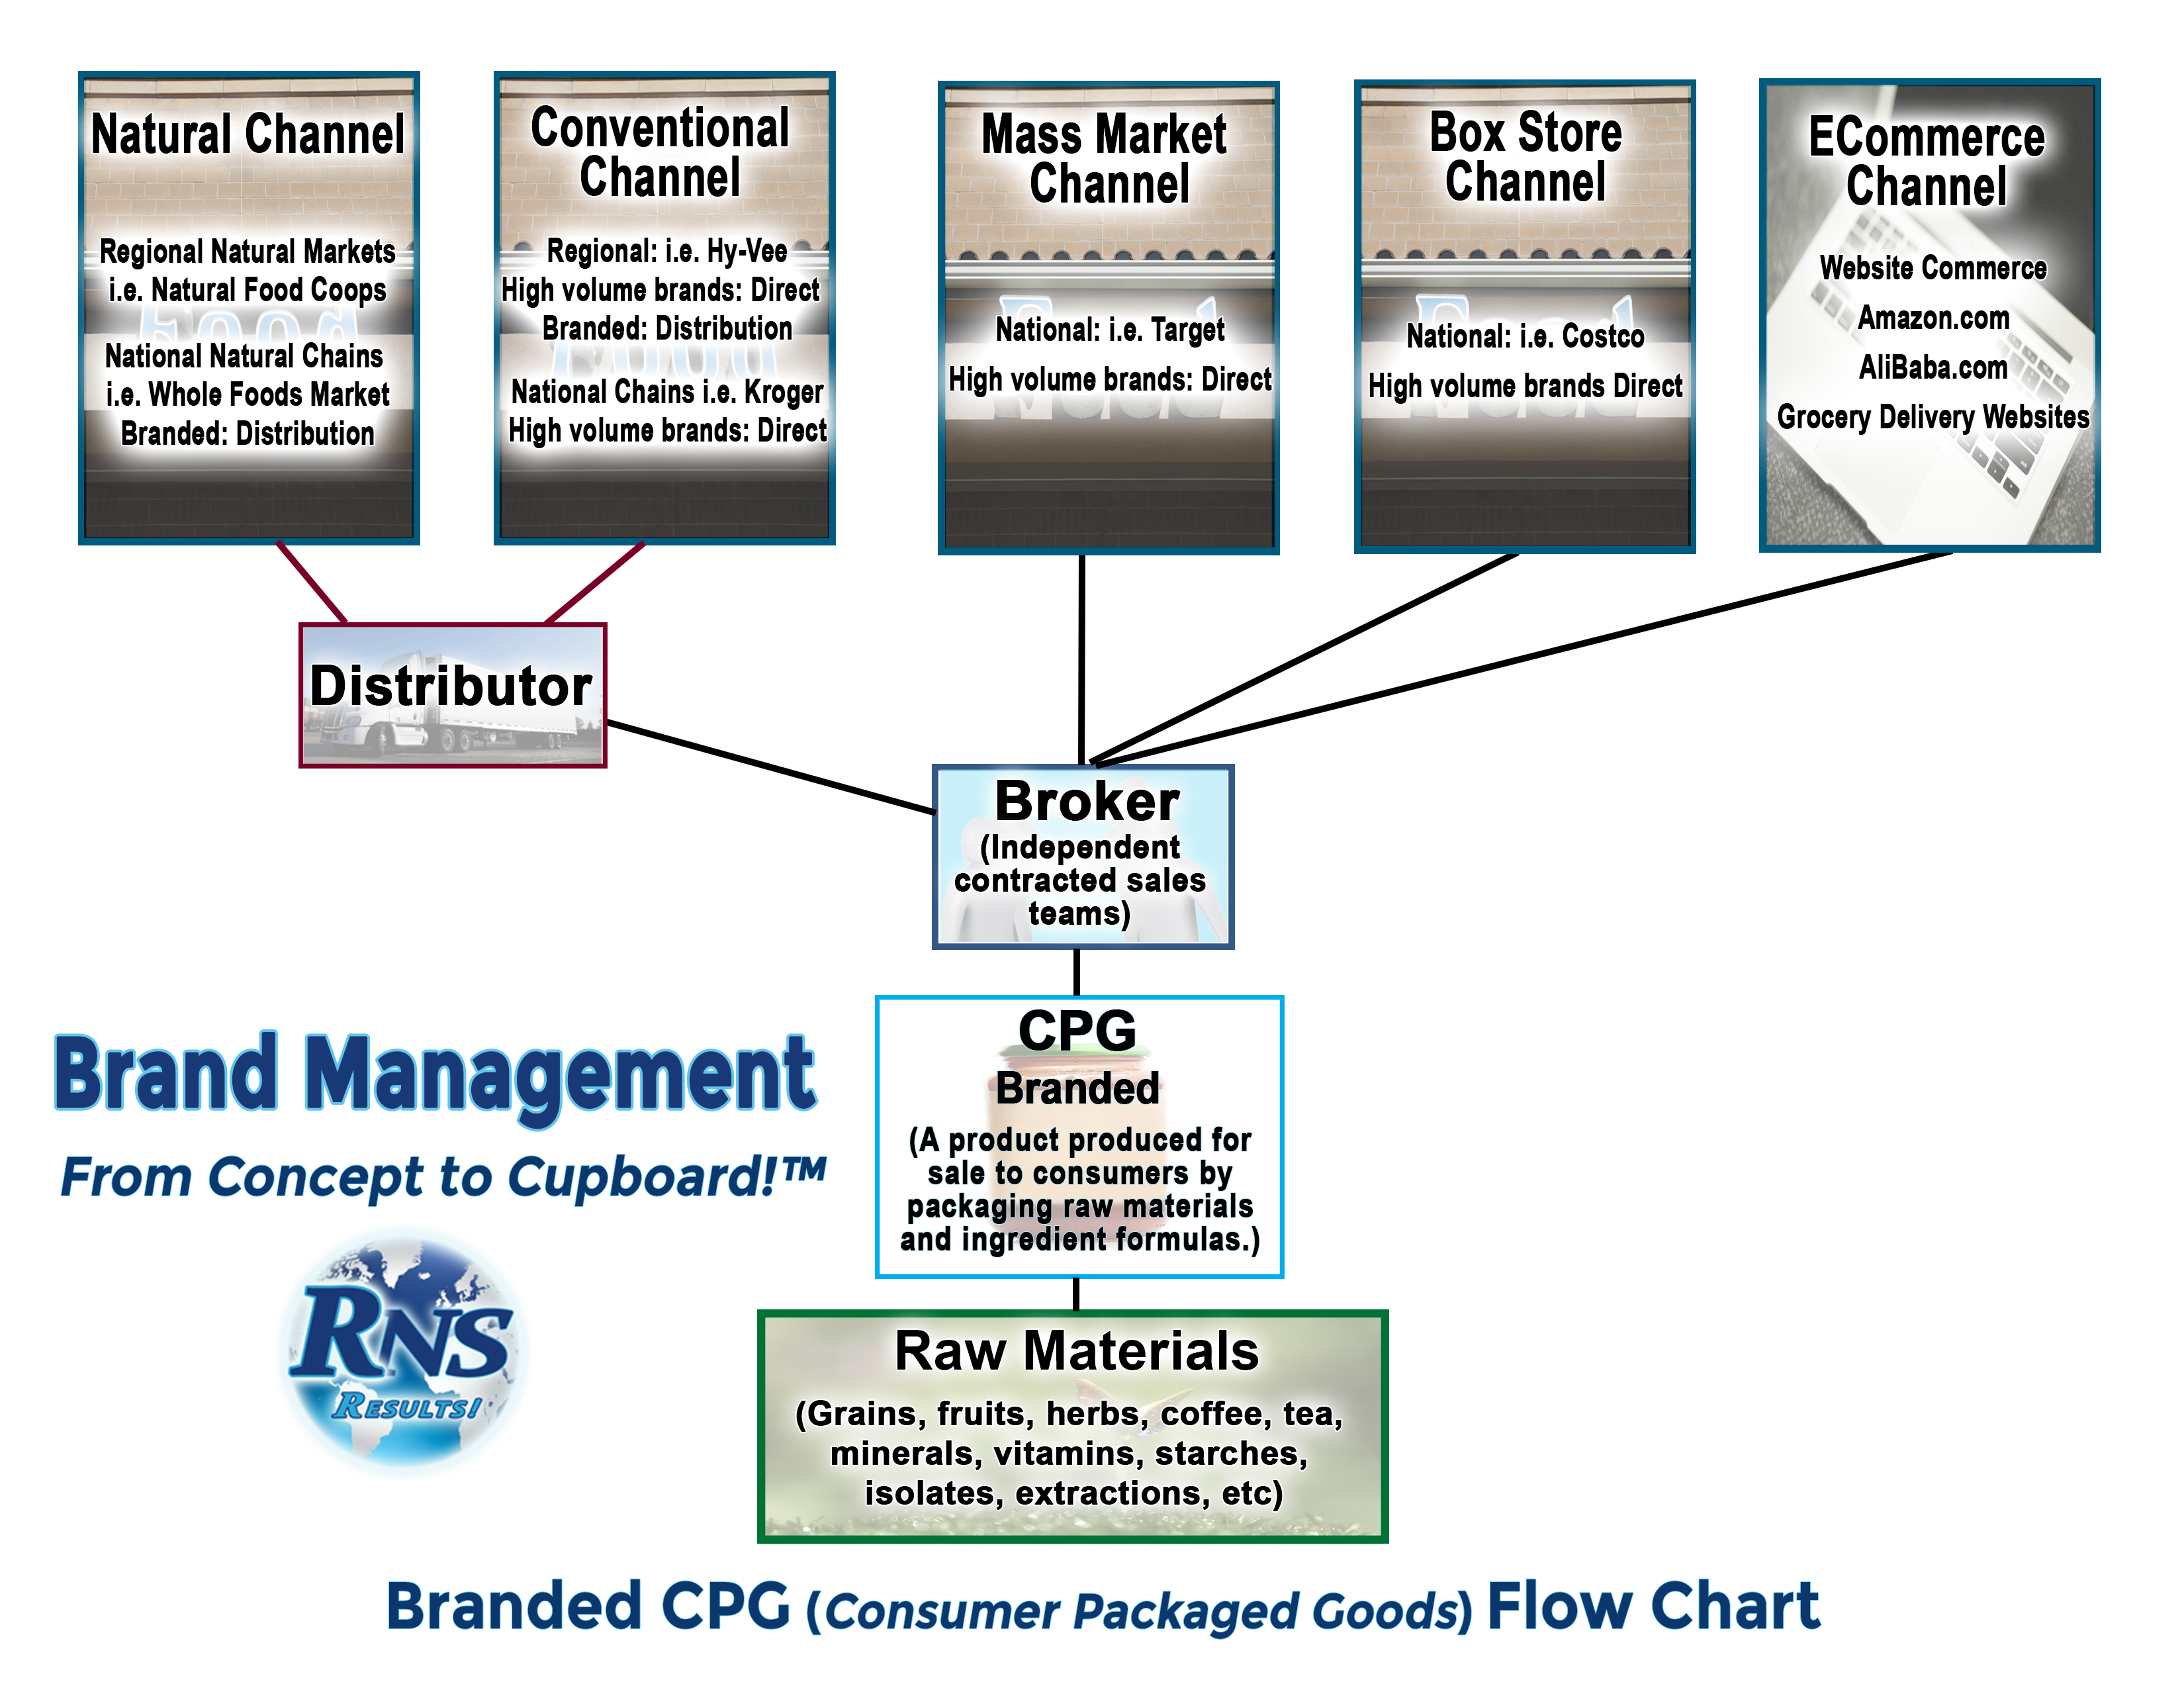 Branded cpg flow chart rns rns branded cpg sales channel flow chart 2 nvjuhfo Images